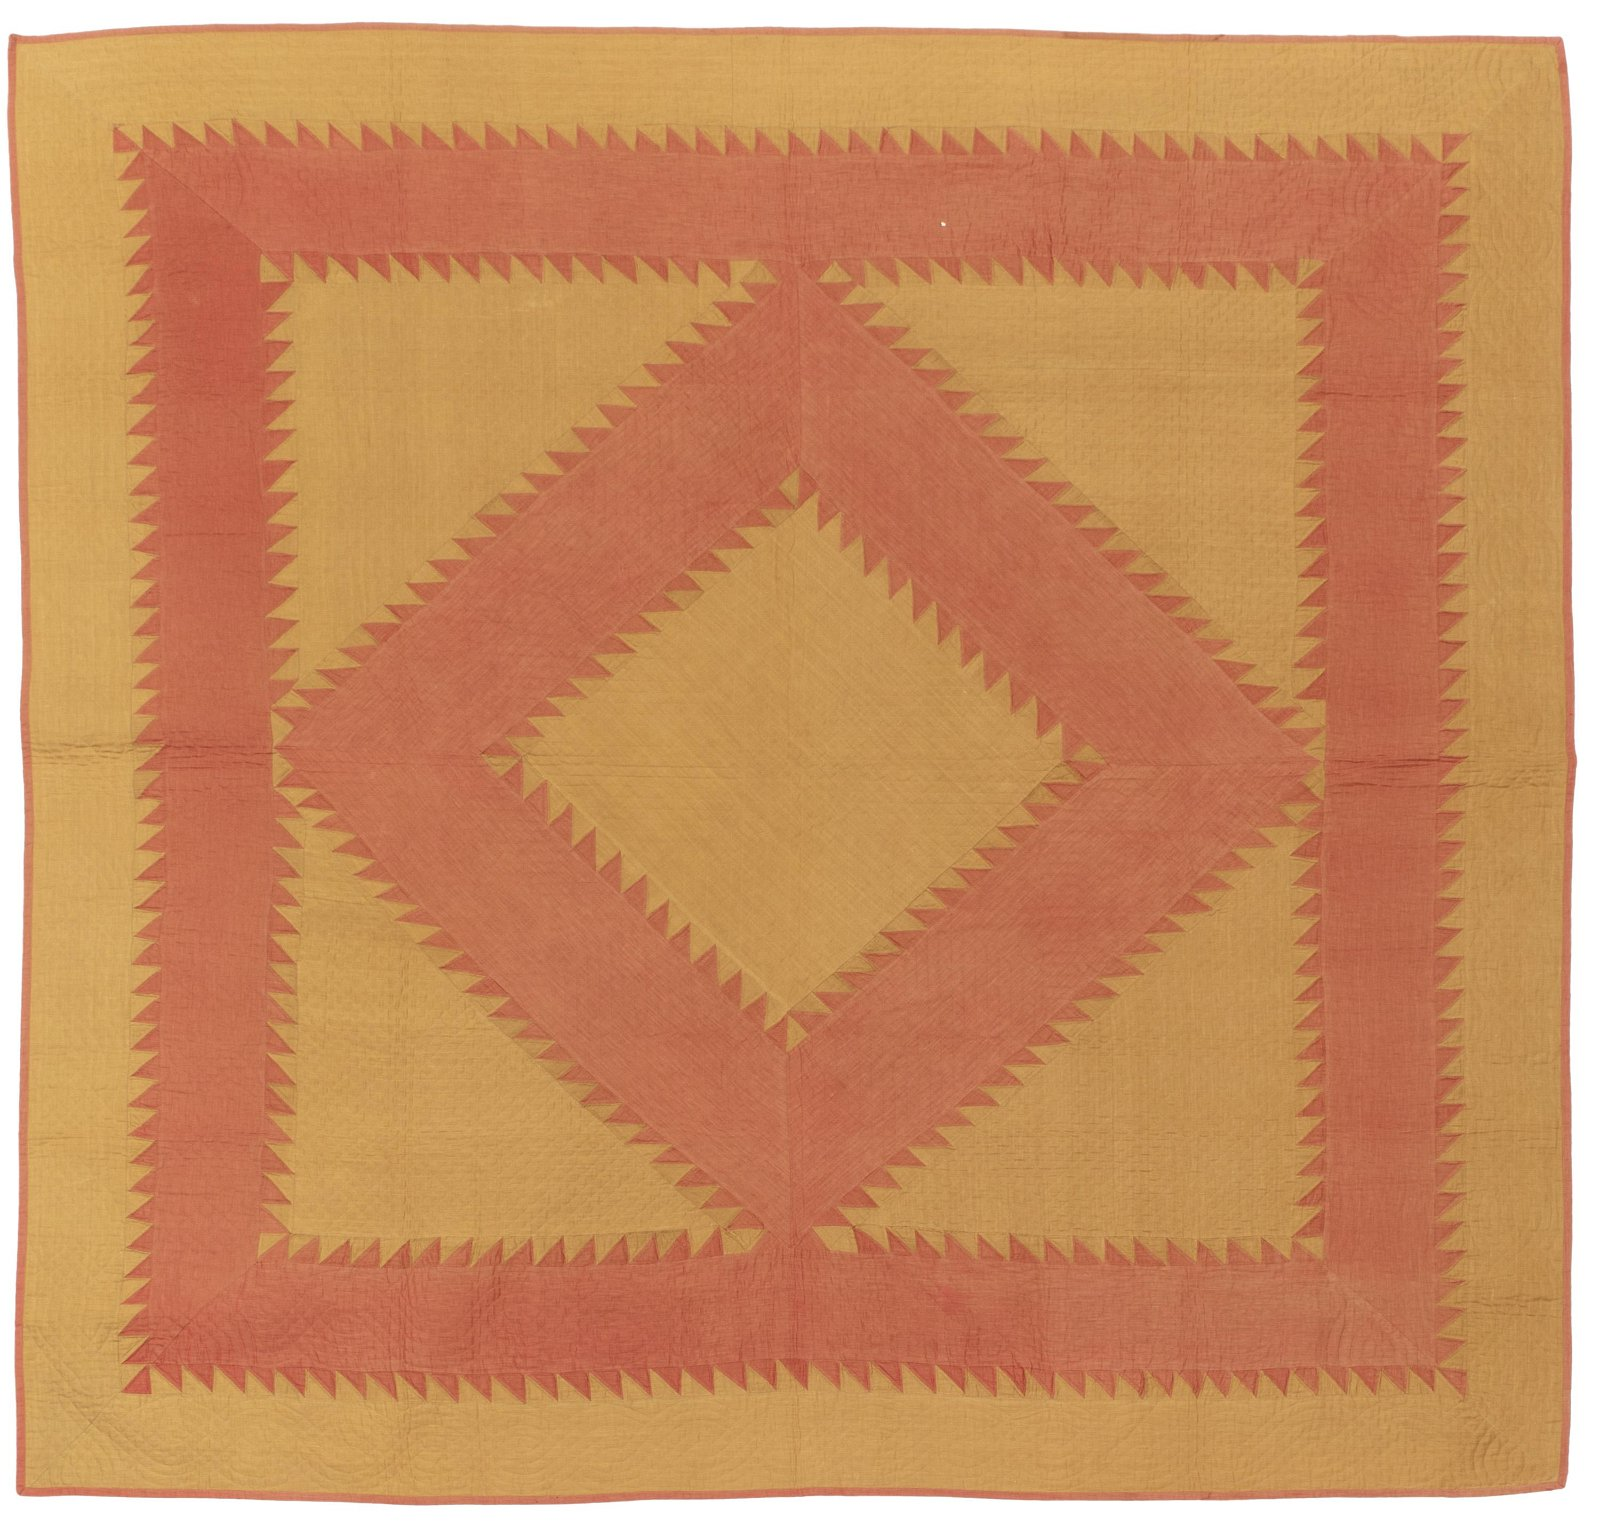 An Amish Diamond Sawtooth in Square quilt